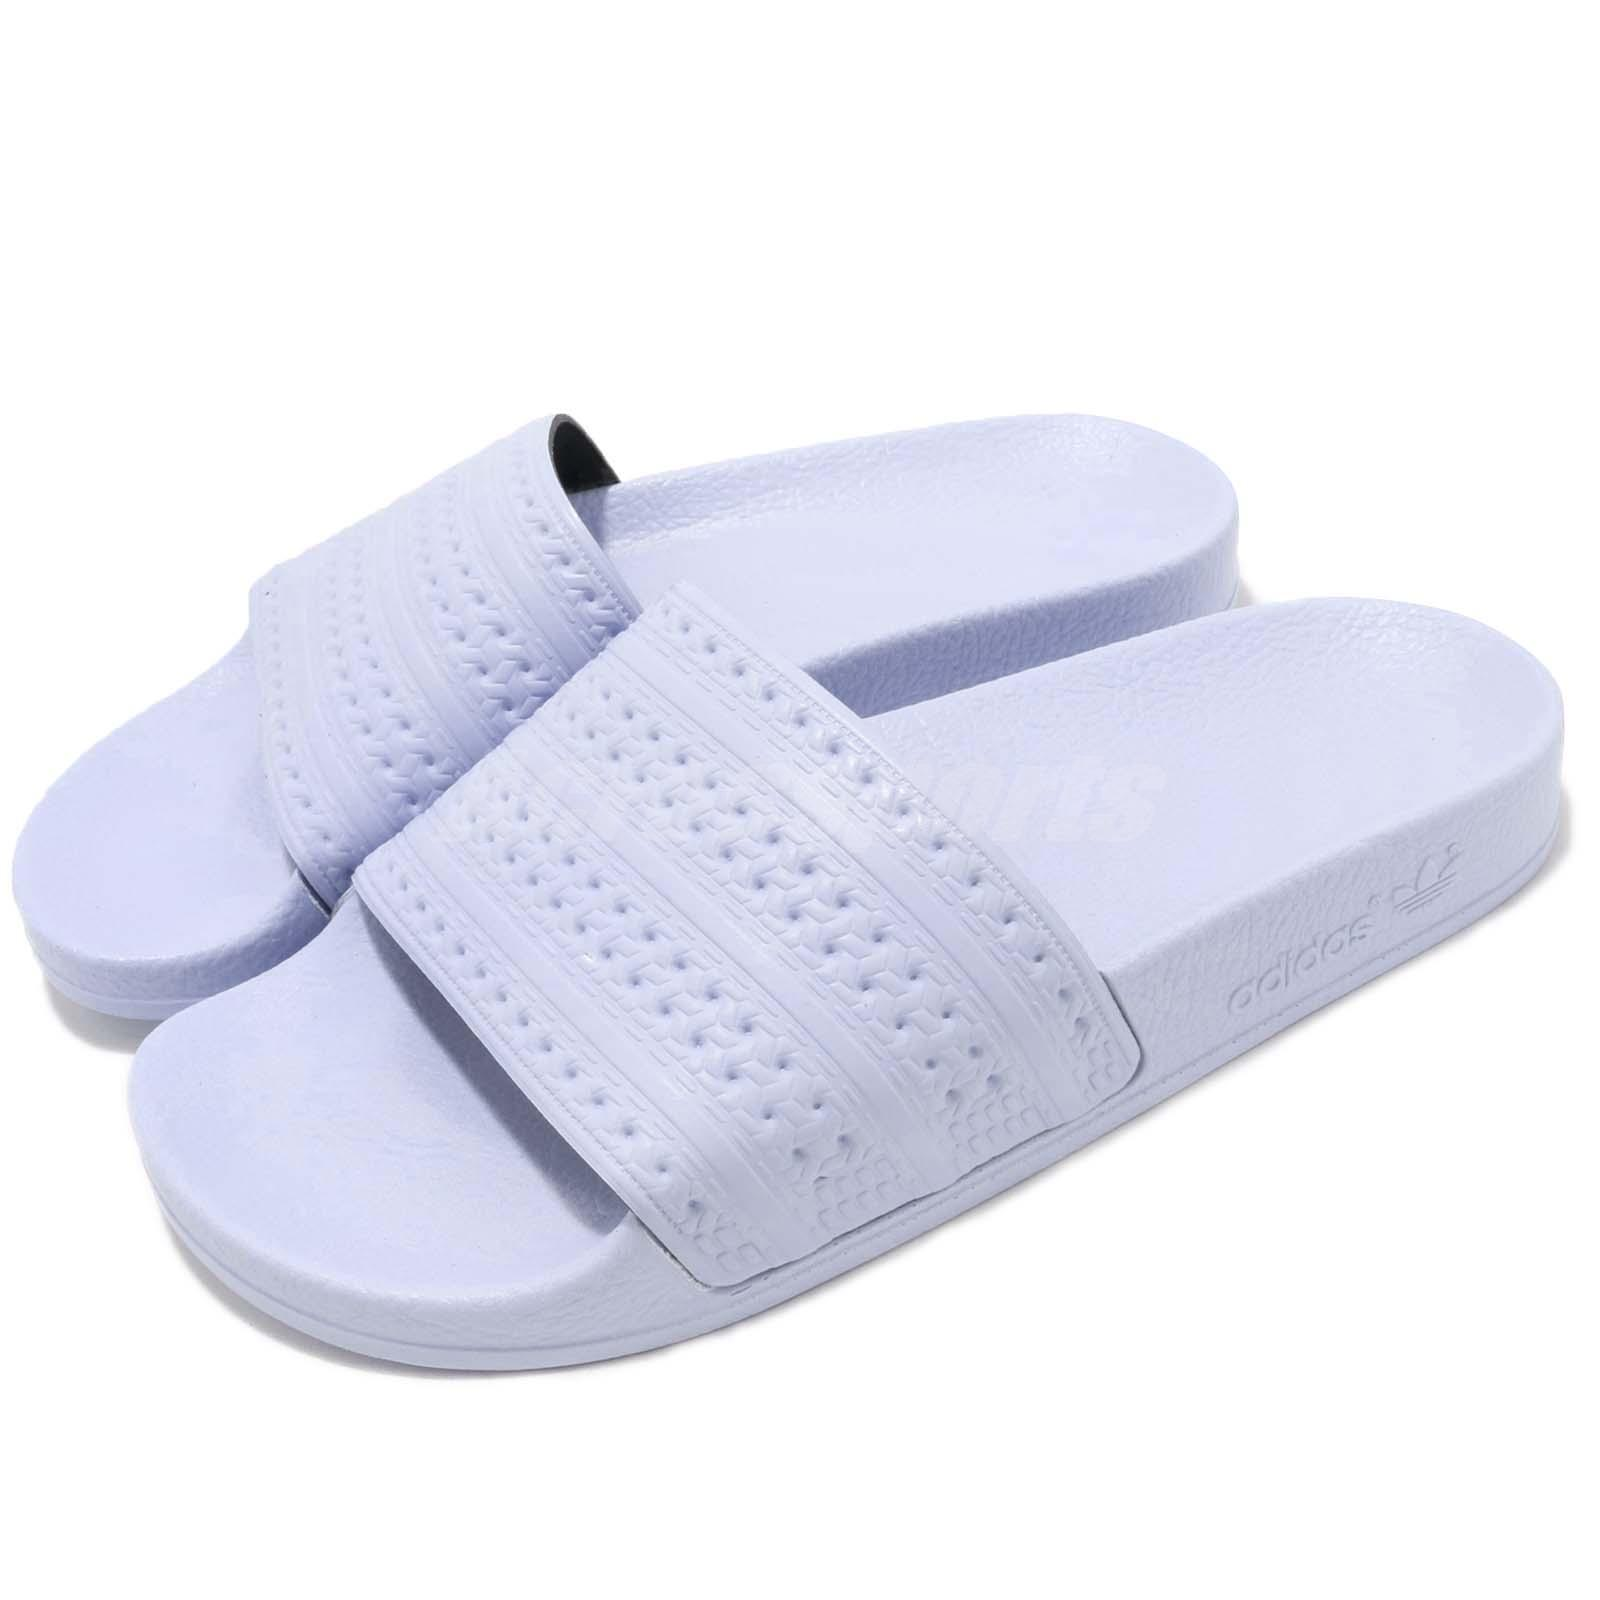 bc3c9508d83d adidas Adilette Easy Blue Blue Blue Men Sports Sandal Slides Slippers  BA7539 f8200a